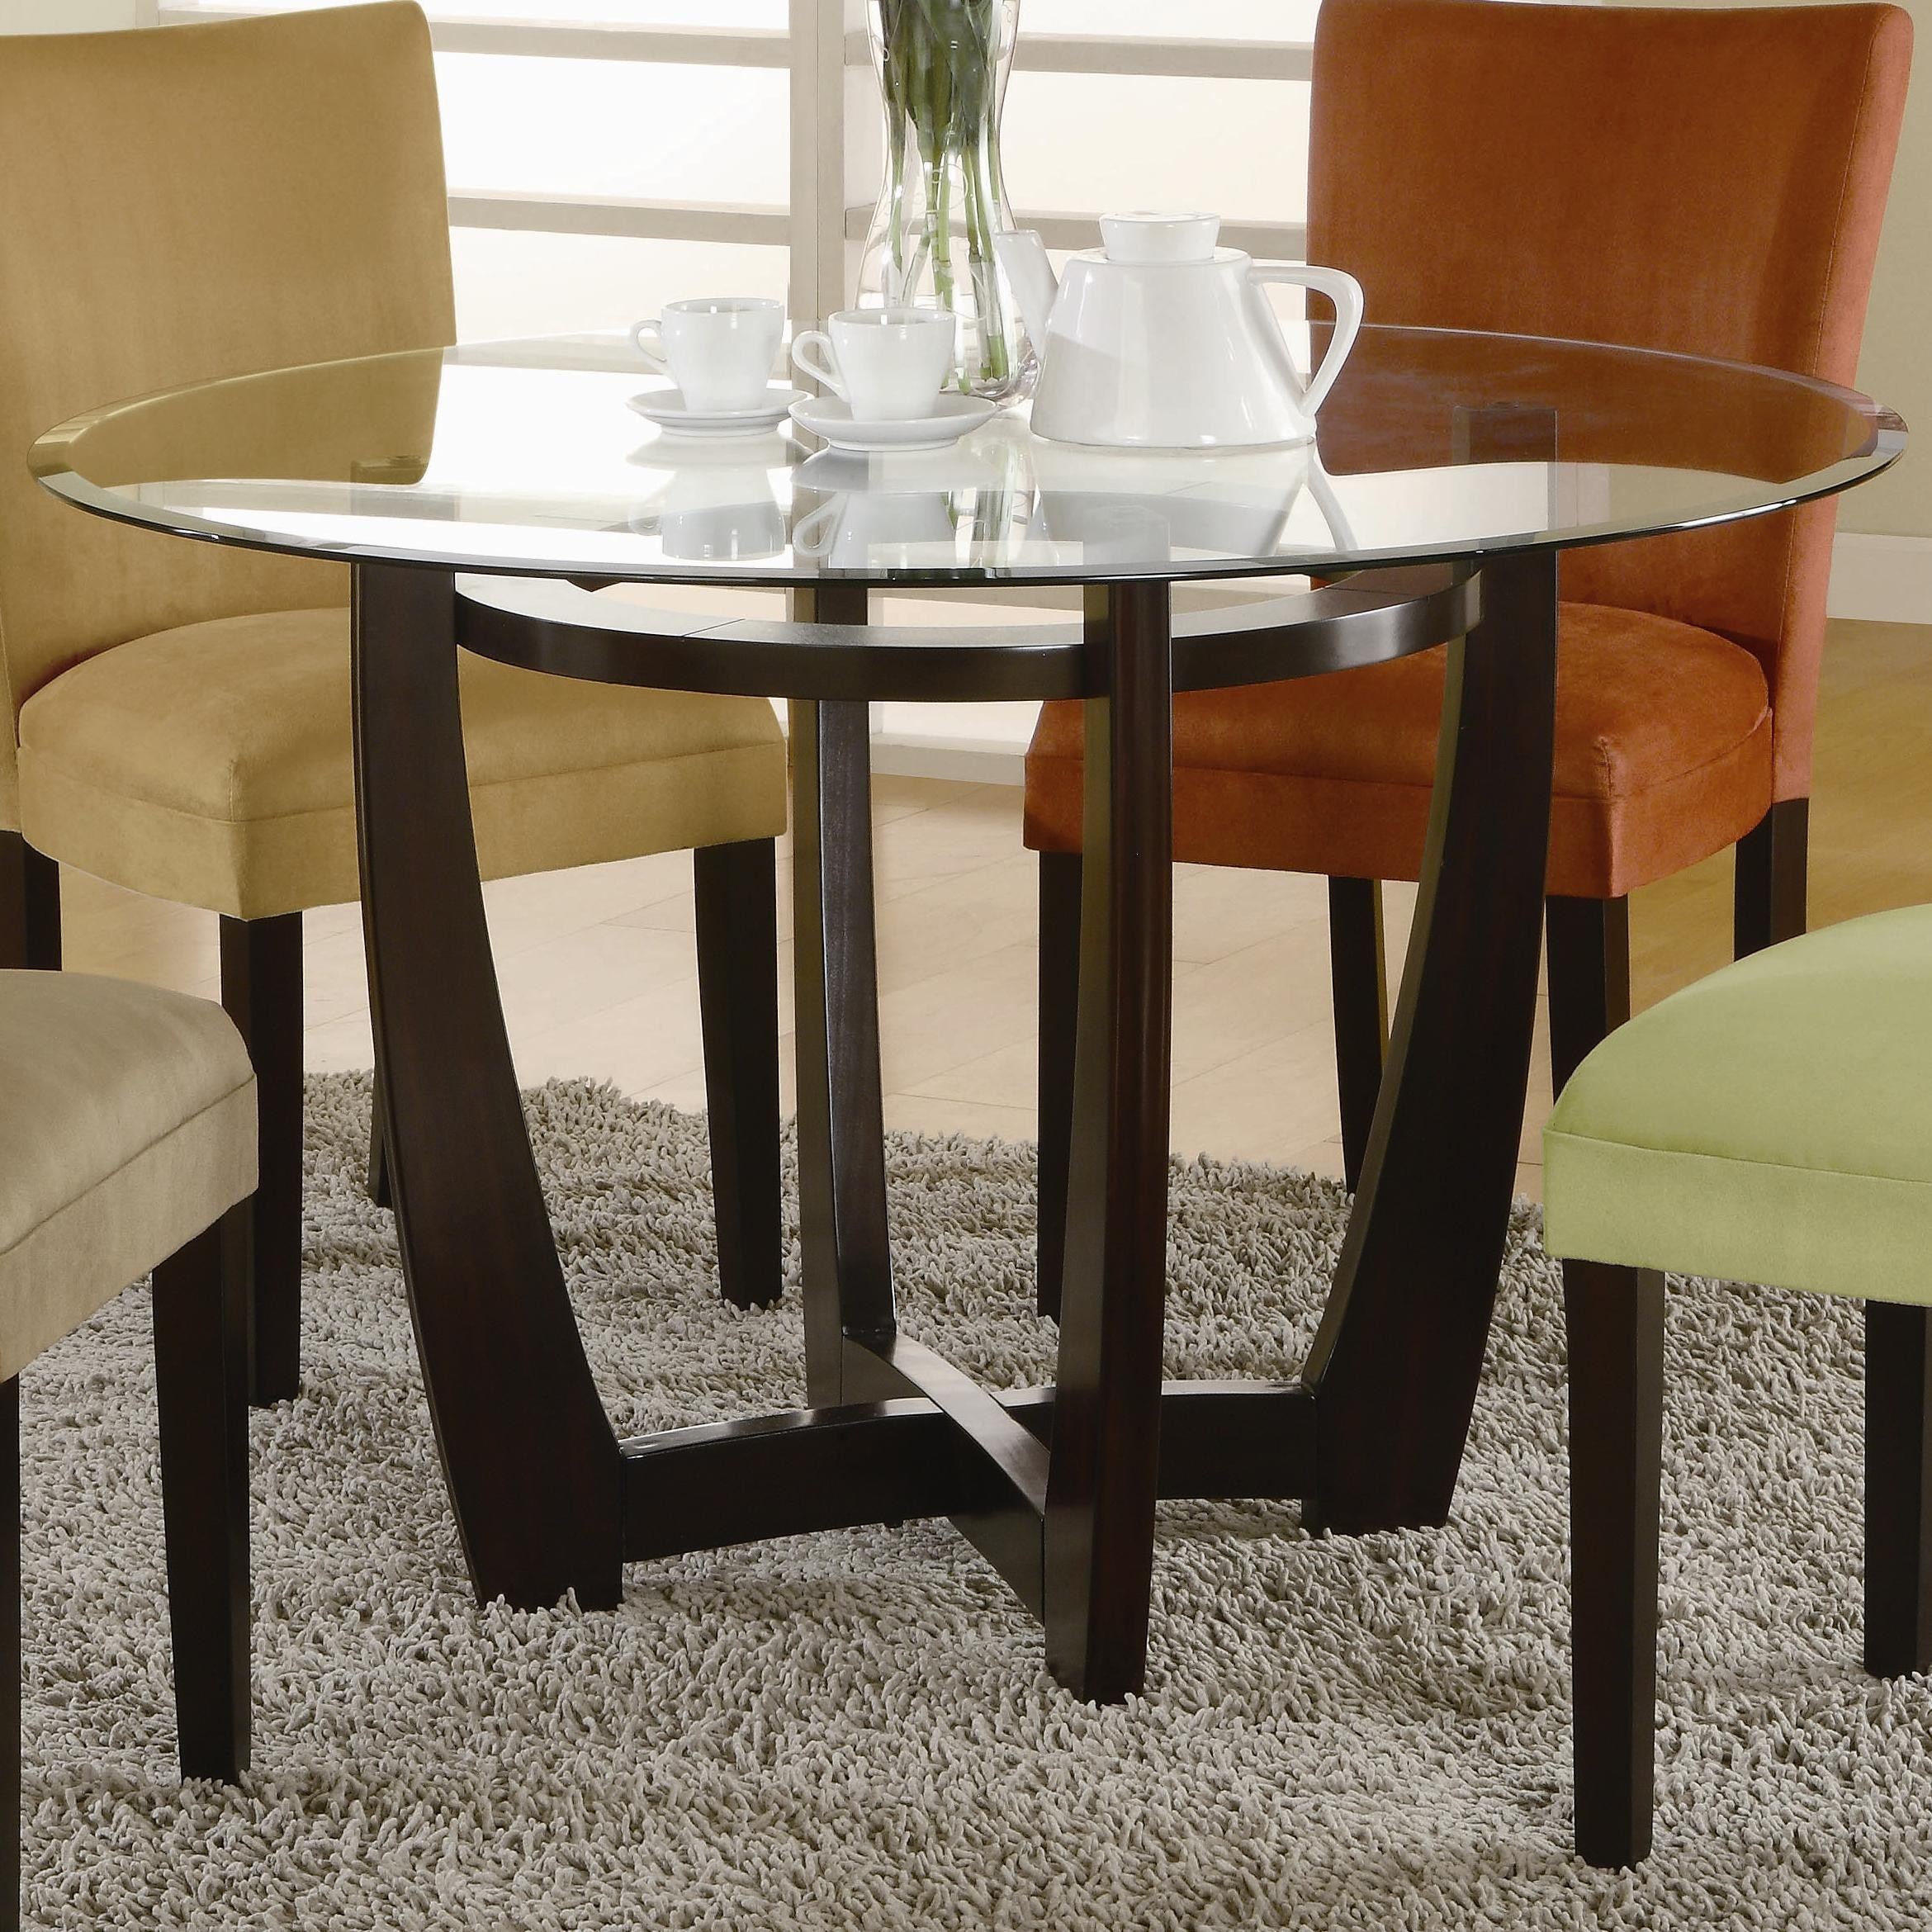 Modern Design Bold Brown Wood Table Base For Glass Top Round Glass Table  Wooden Chairs Smooth